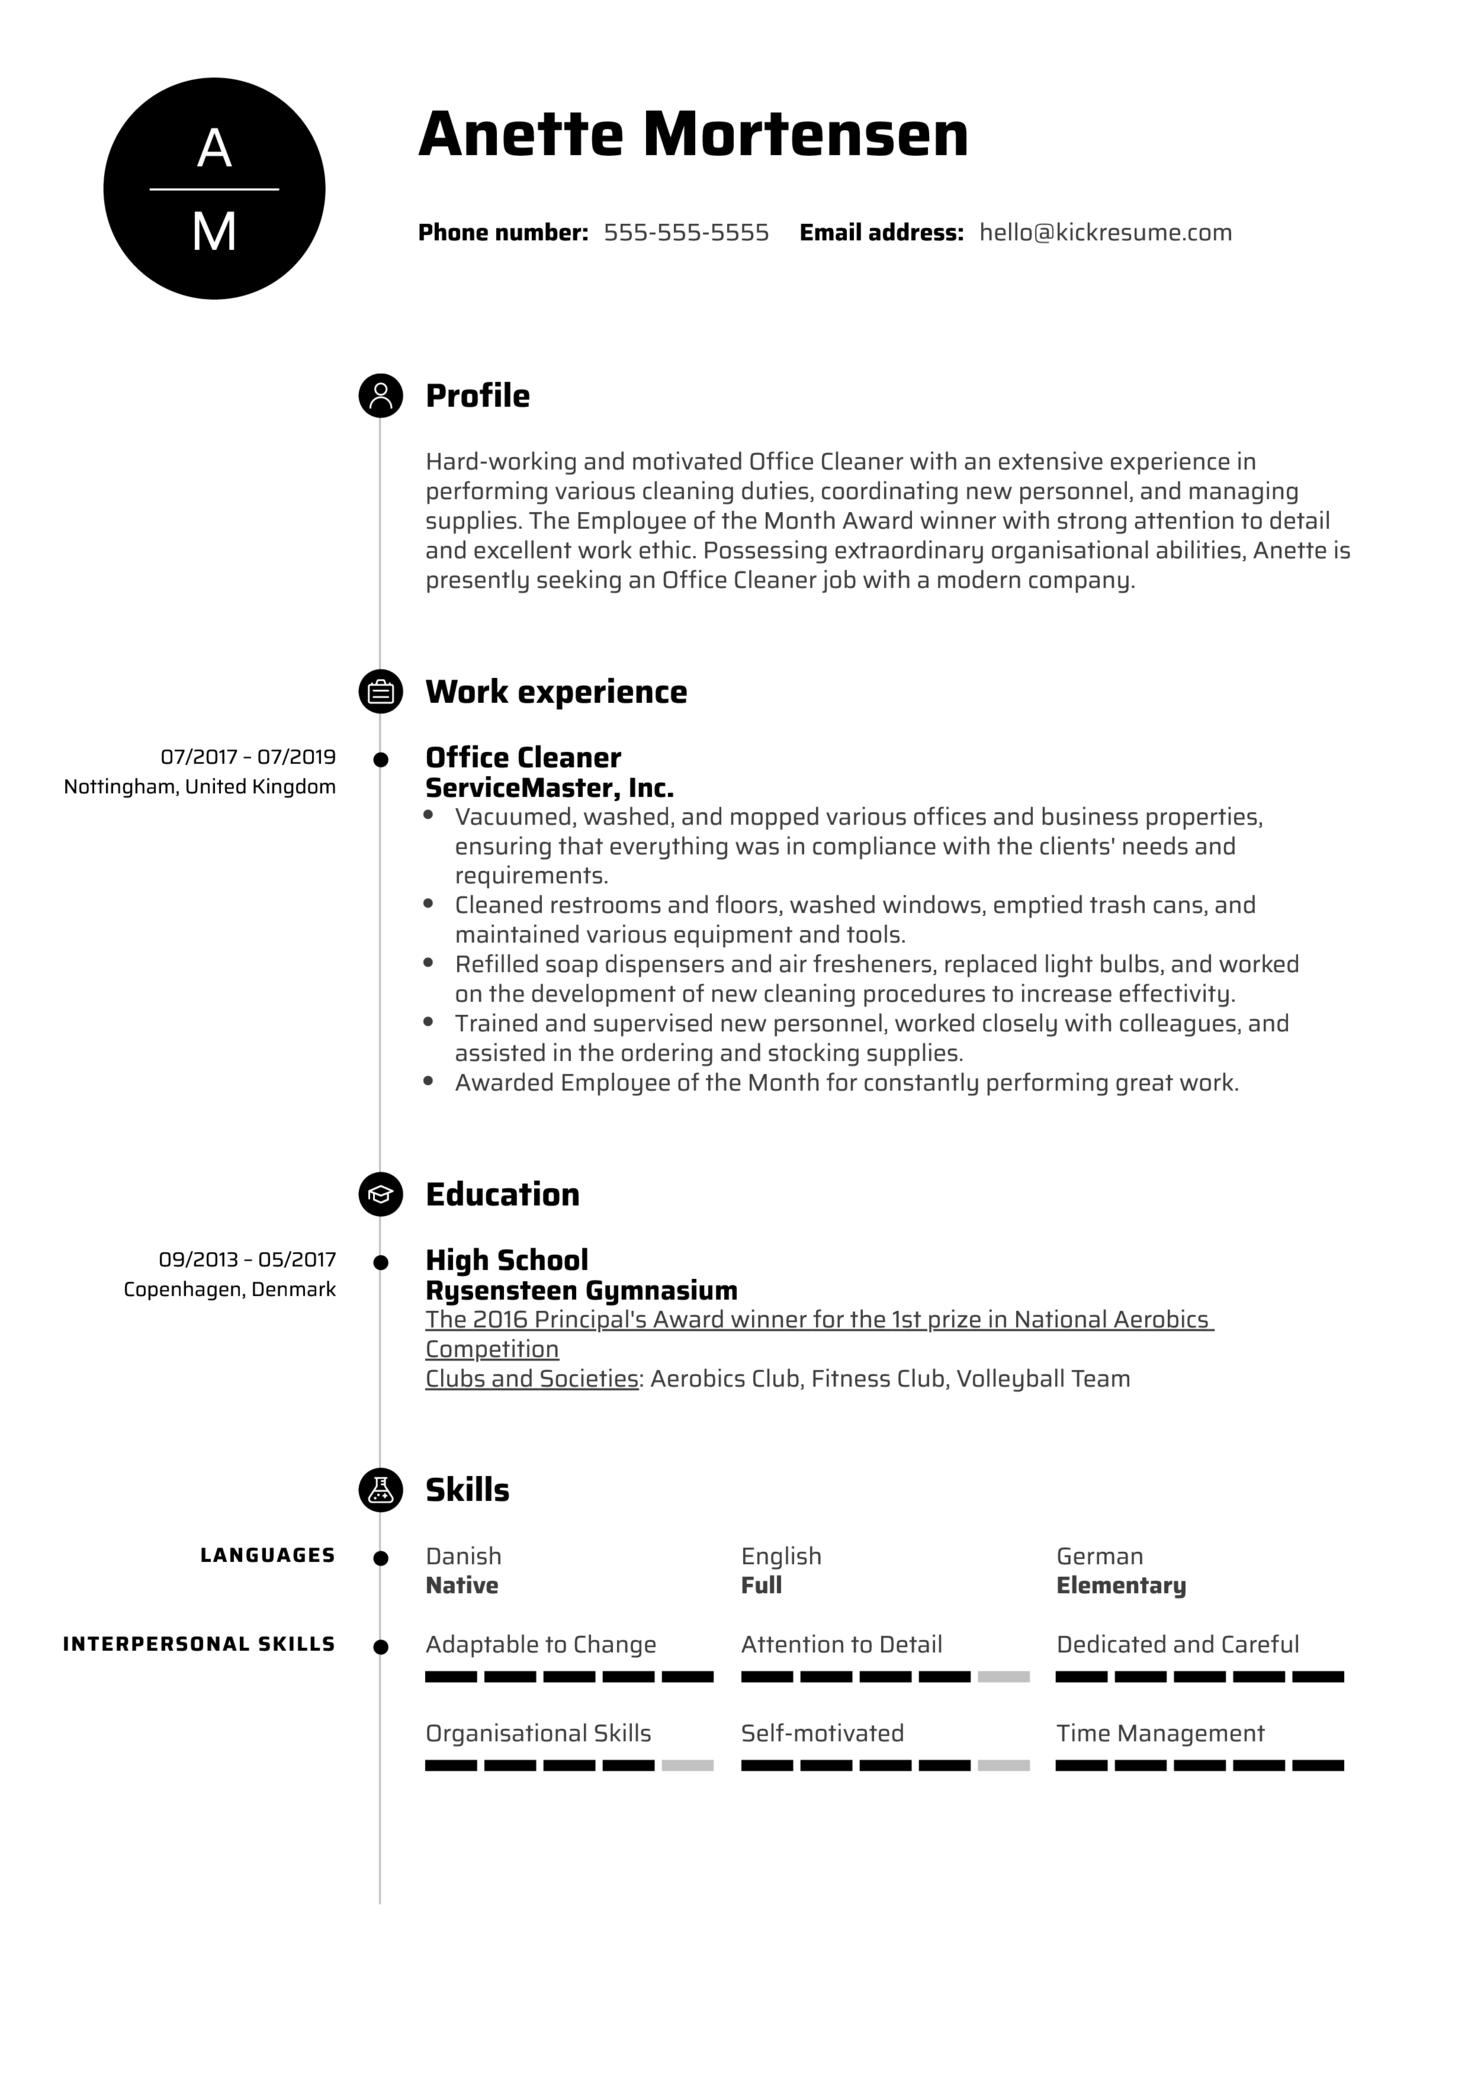 Office Cleaner Resume Example (parte 1)